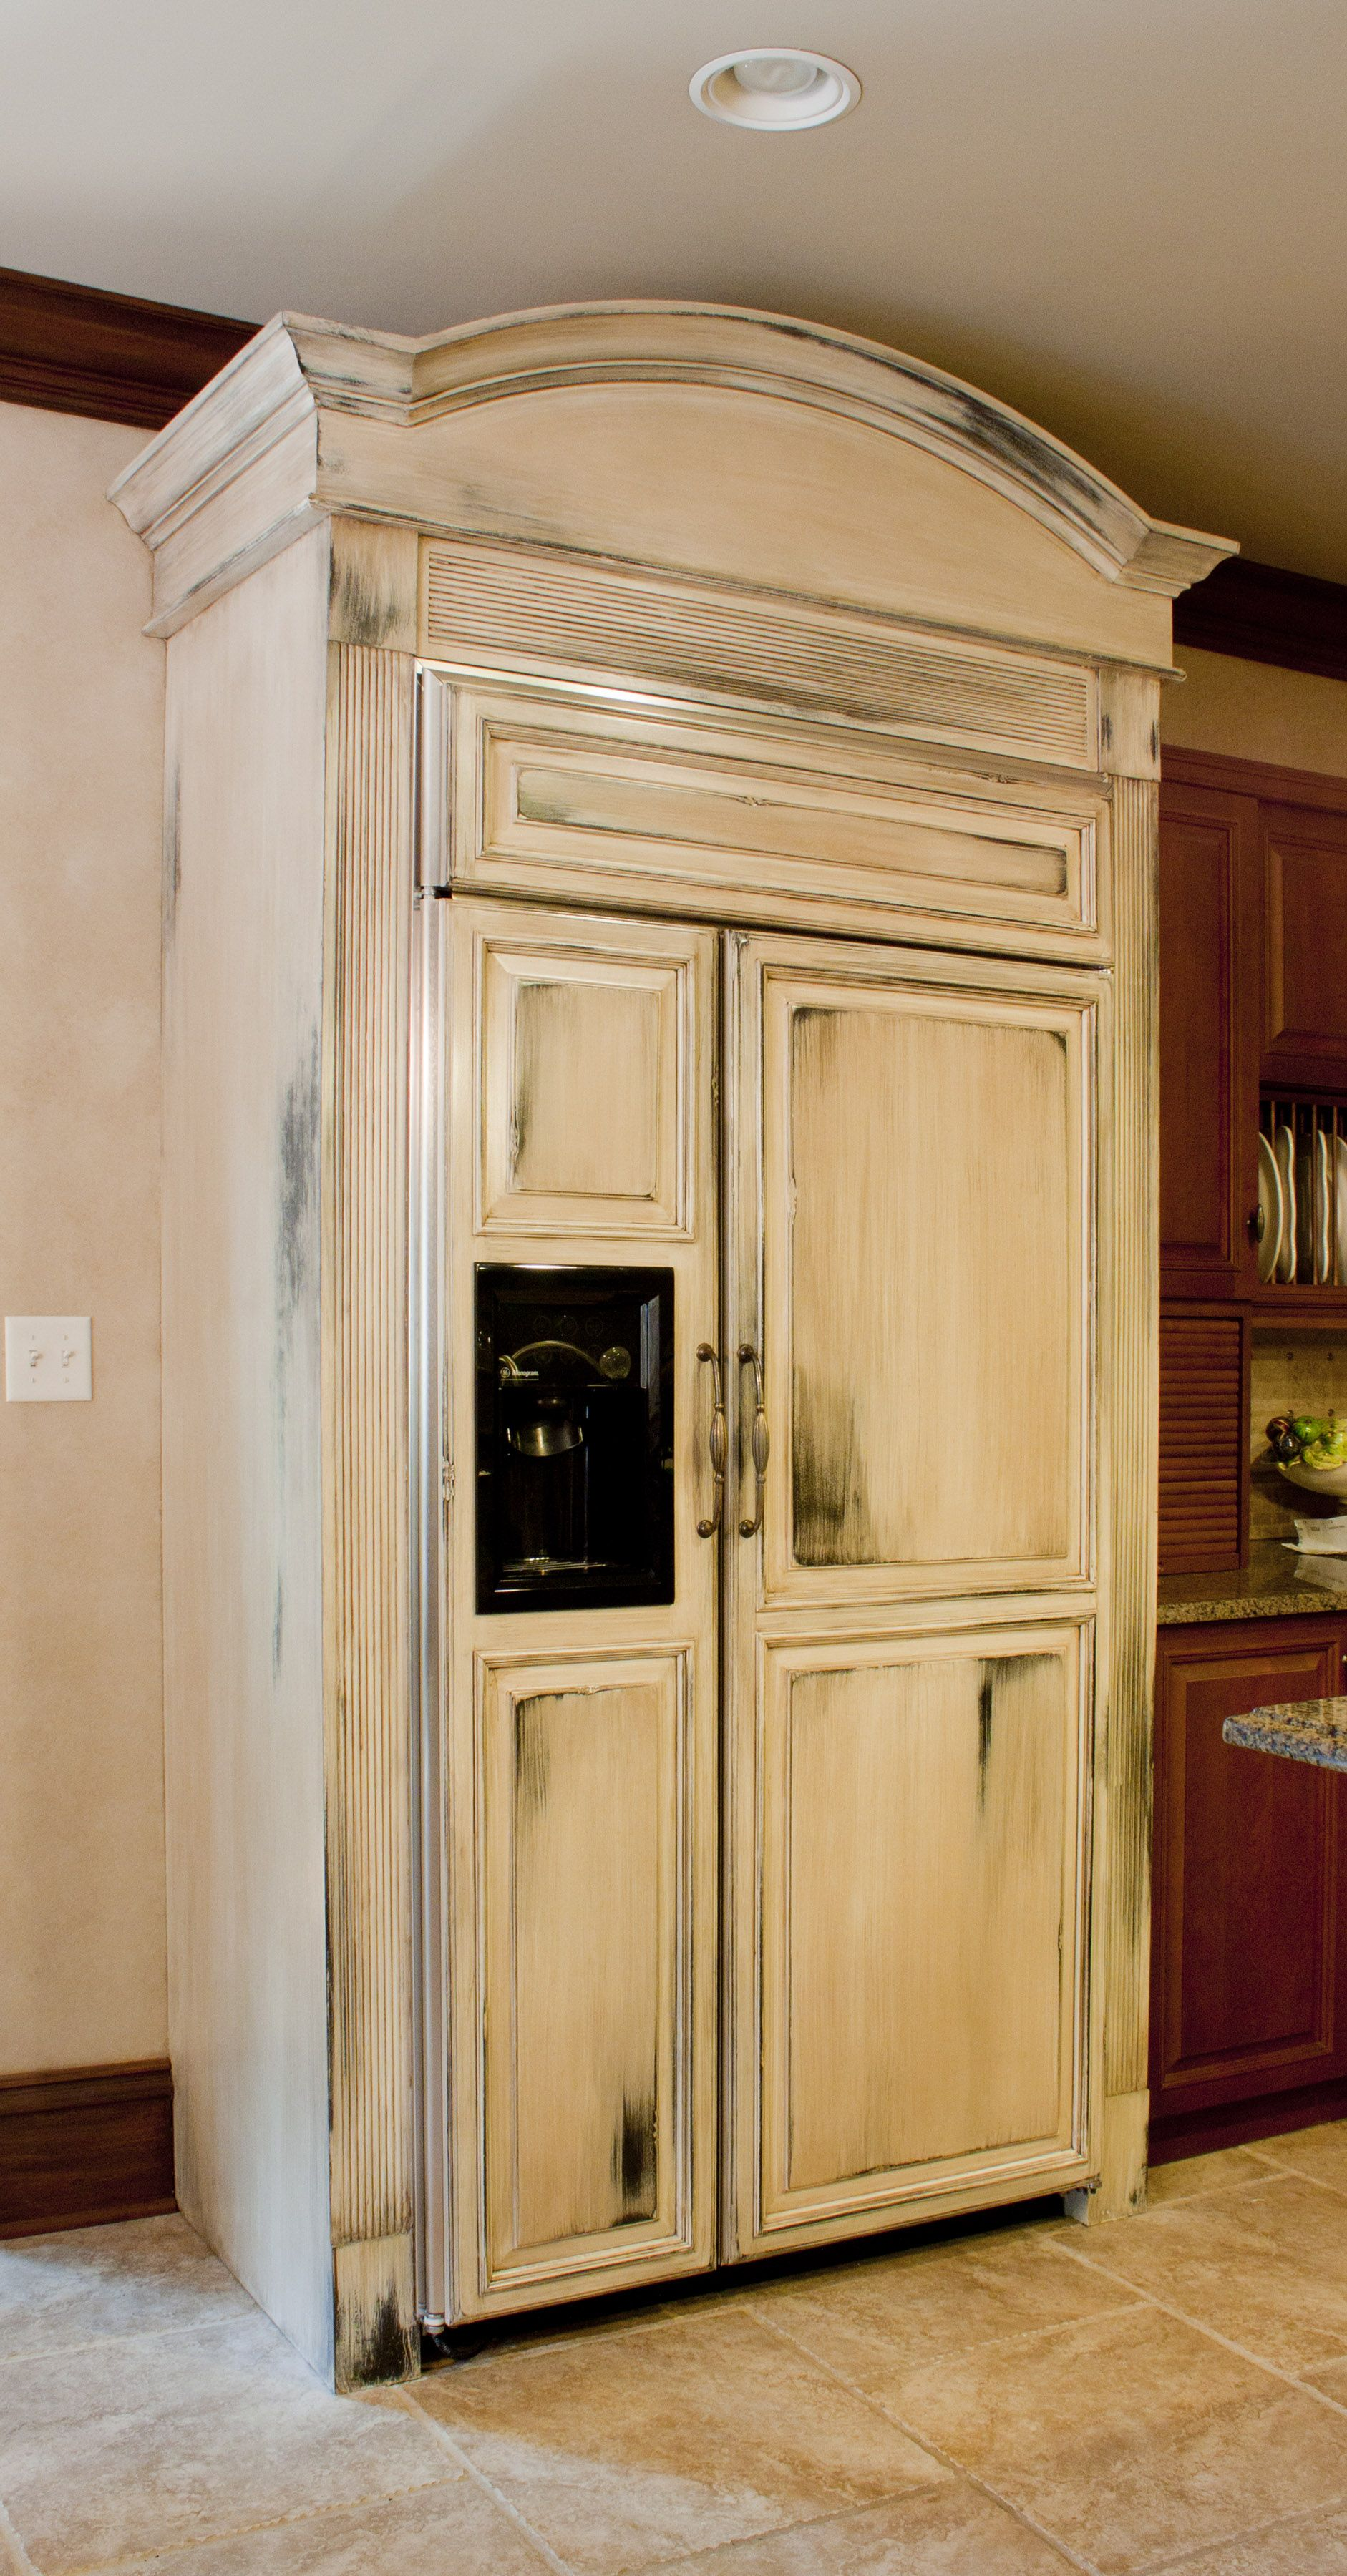 Muti Layer Distressed Paint And Glaze Finish On Paneled